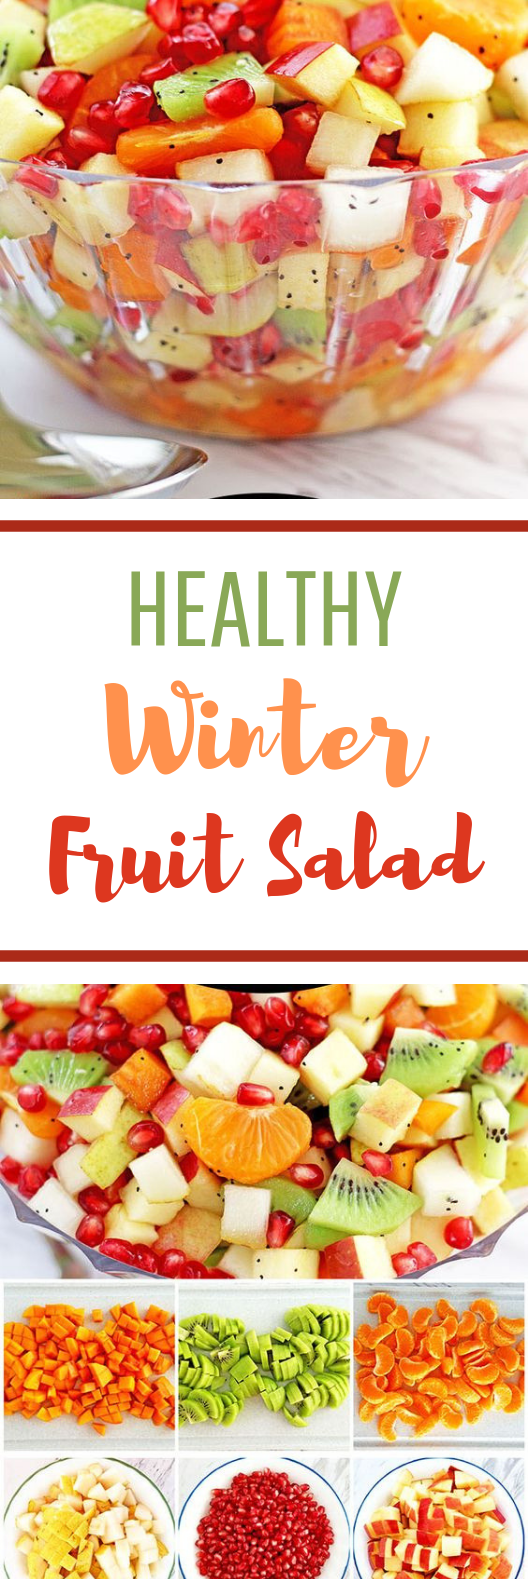 Healthy Winter Fruit Salad #fruitbased #vegetarian